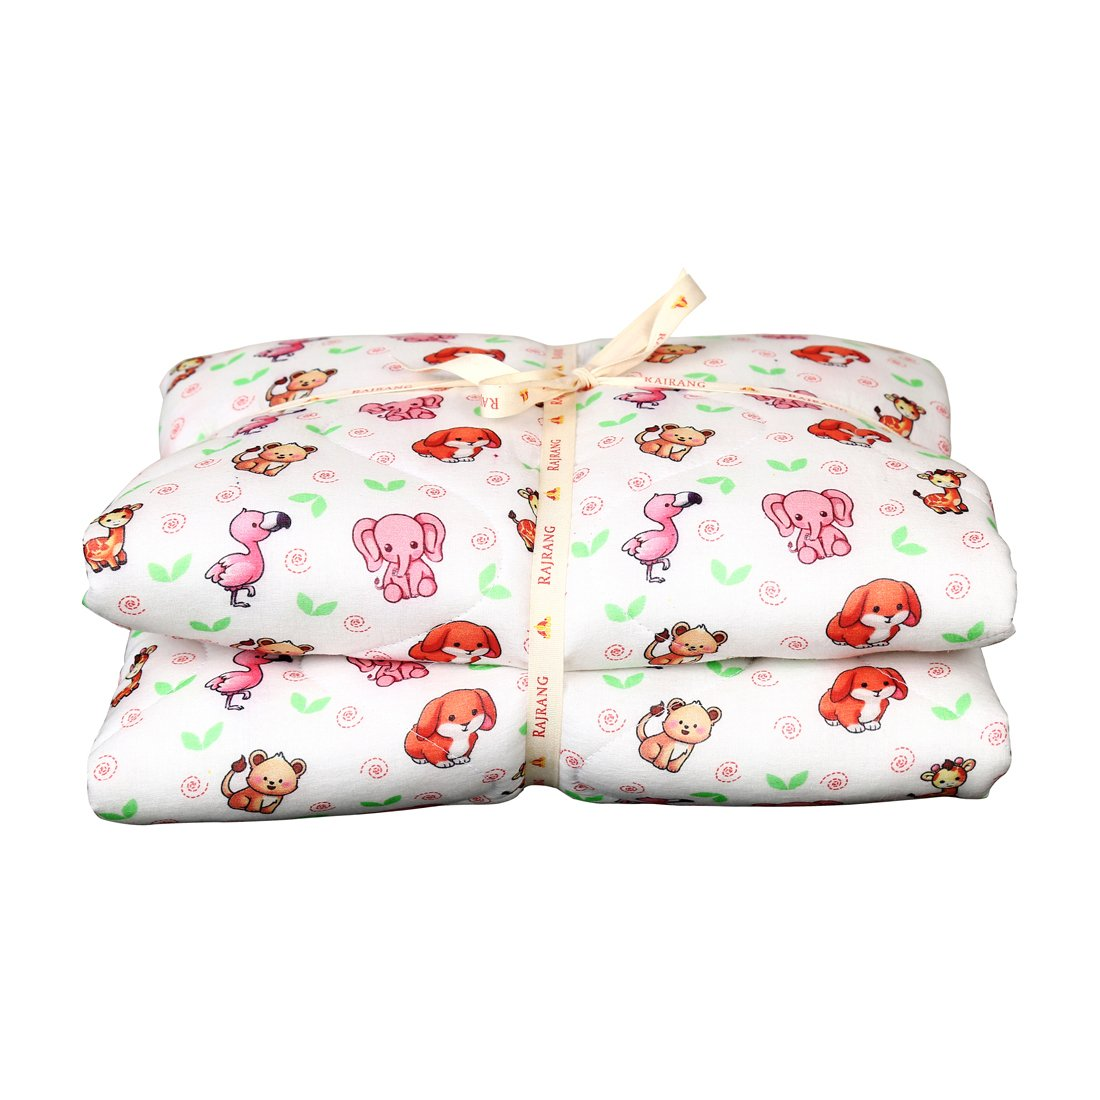 White and Pink Baby Quilt - Warm and Snuggly Toddler Blanket Animal Printed Crib Comforter for New Born Boys & Girls Bed Covers